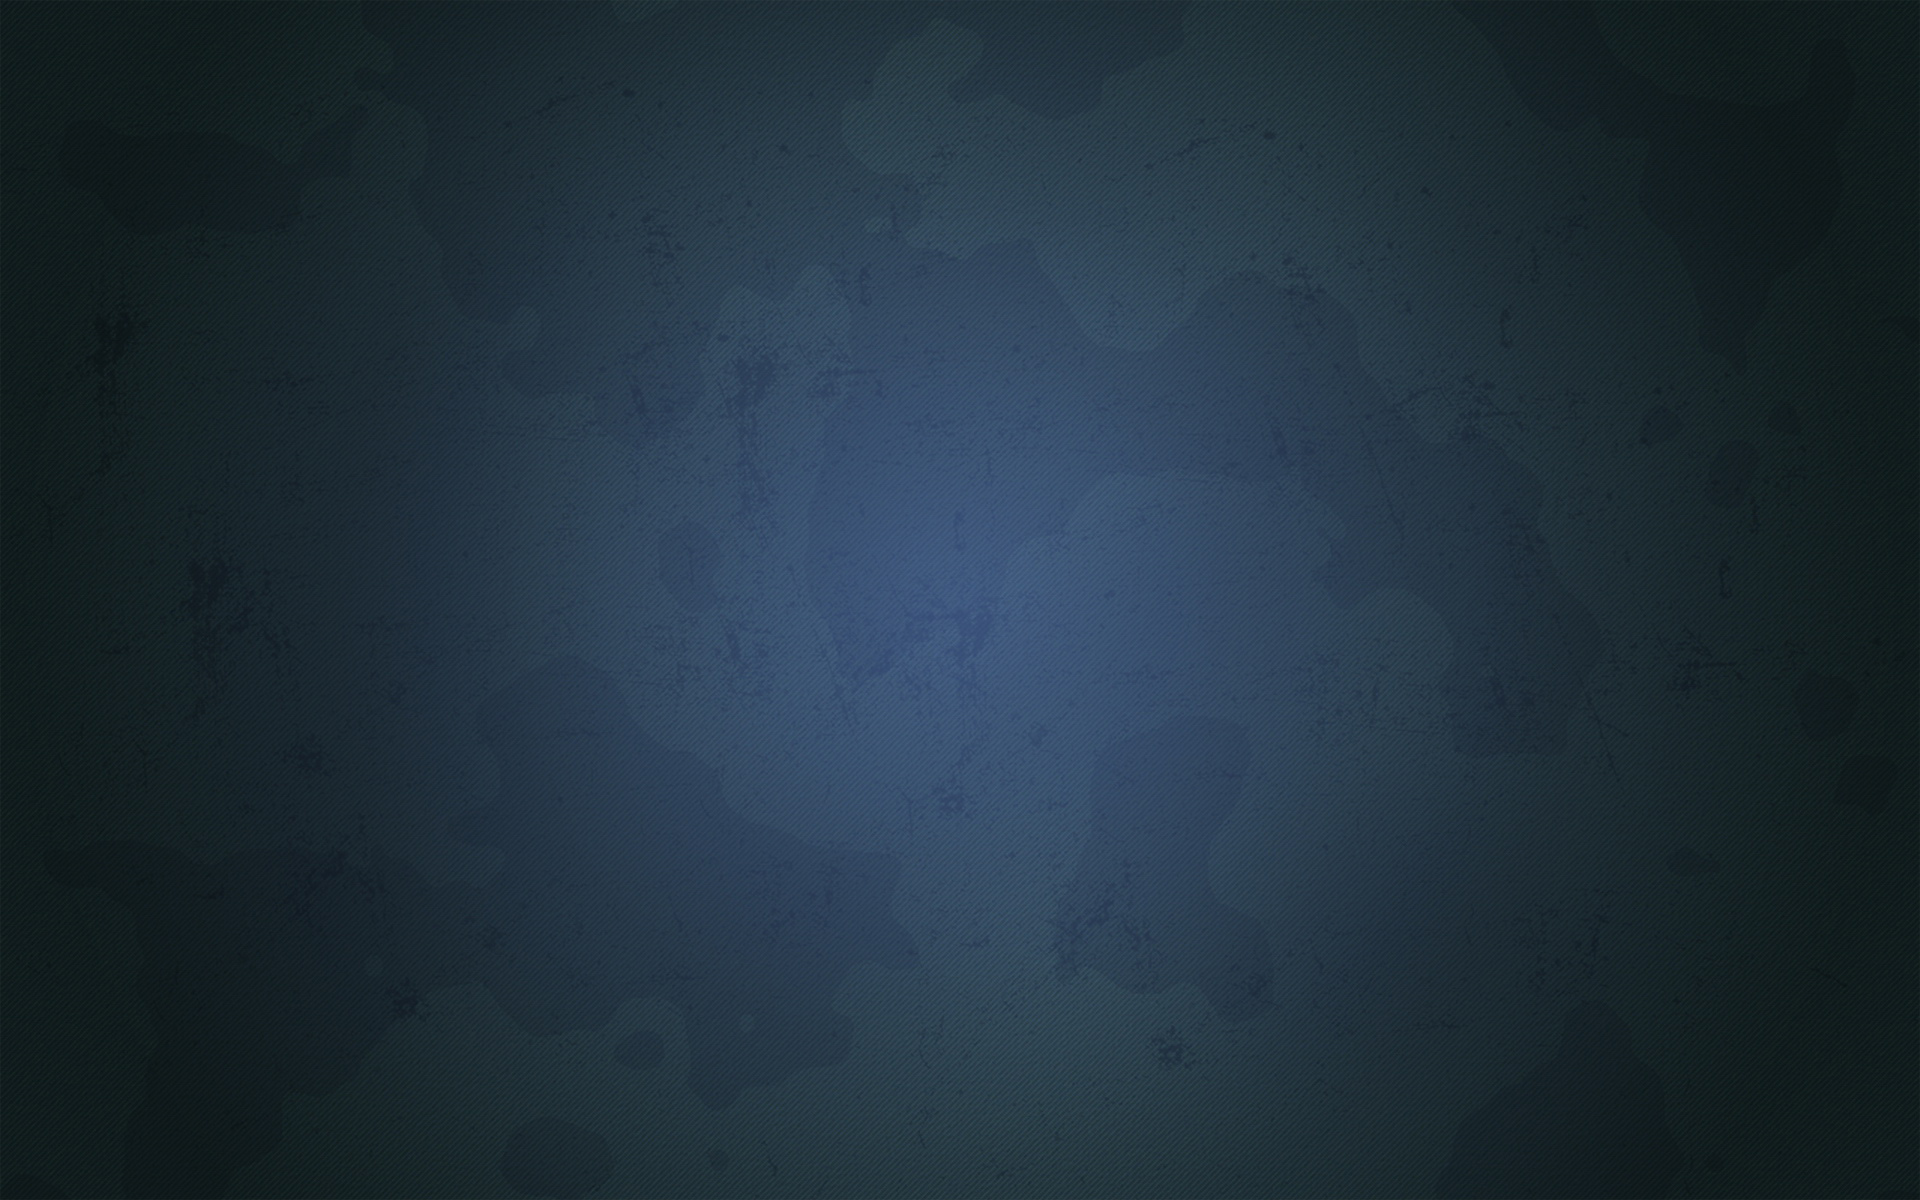 Simple Backgrounds wallpaper 1920x1200 47278 1920x1200